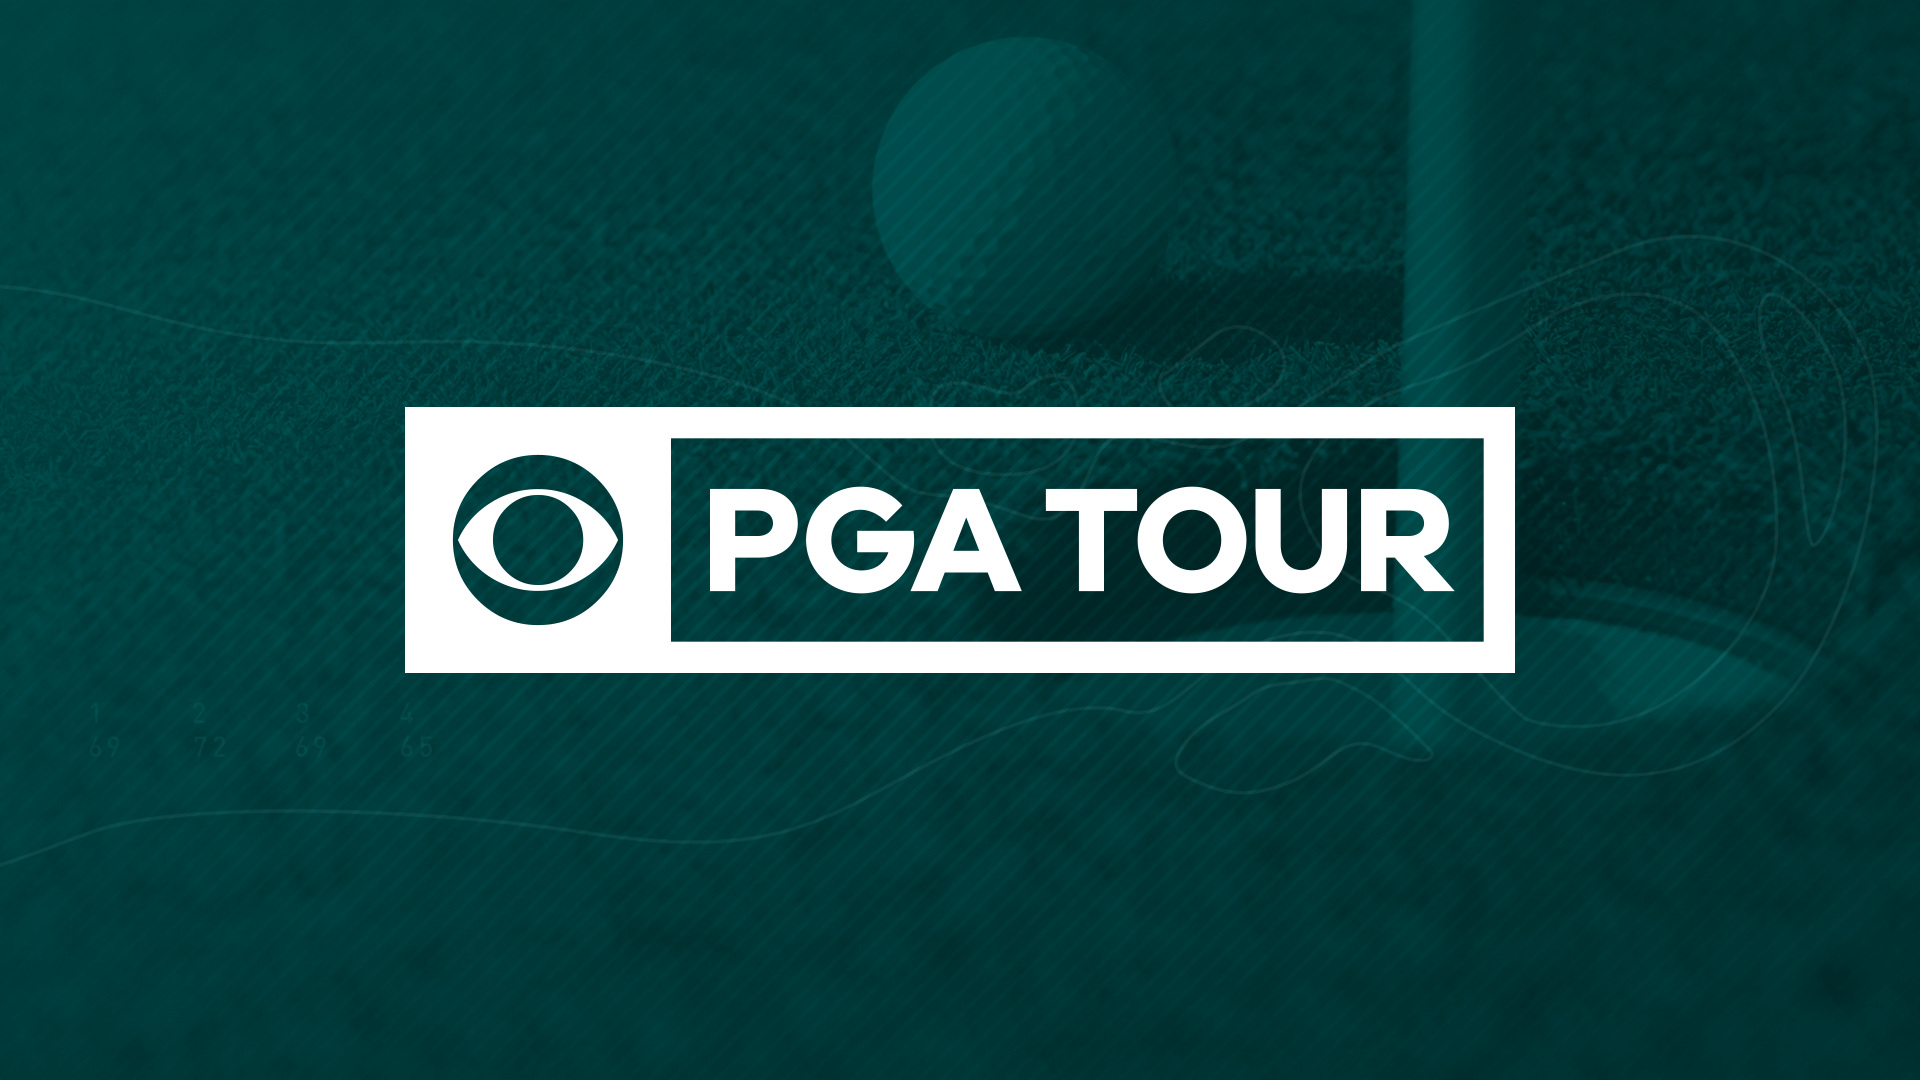 Watch CBS PGA TOUR The Northern Trust CBSSports CBSSports